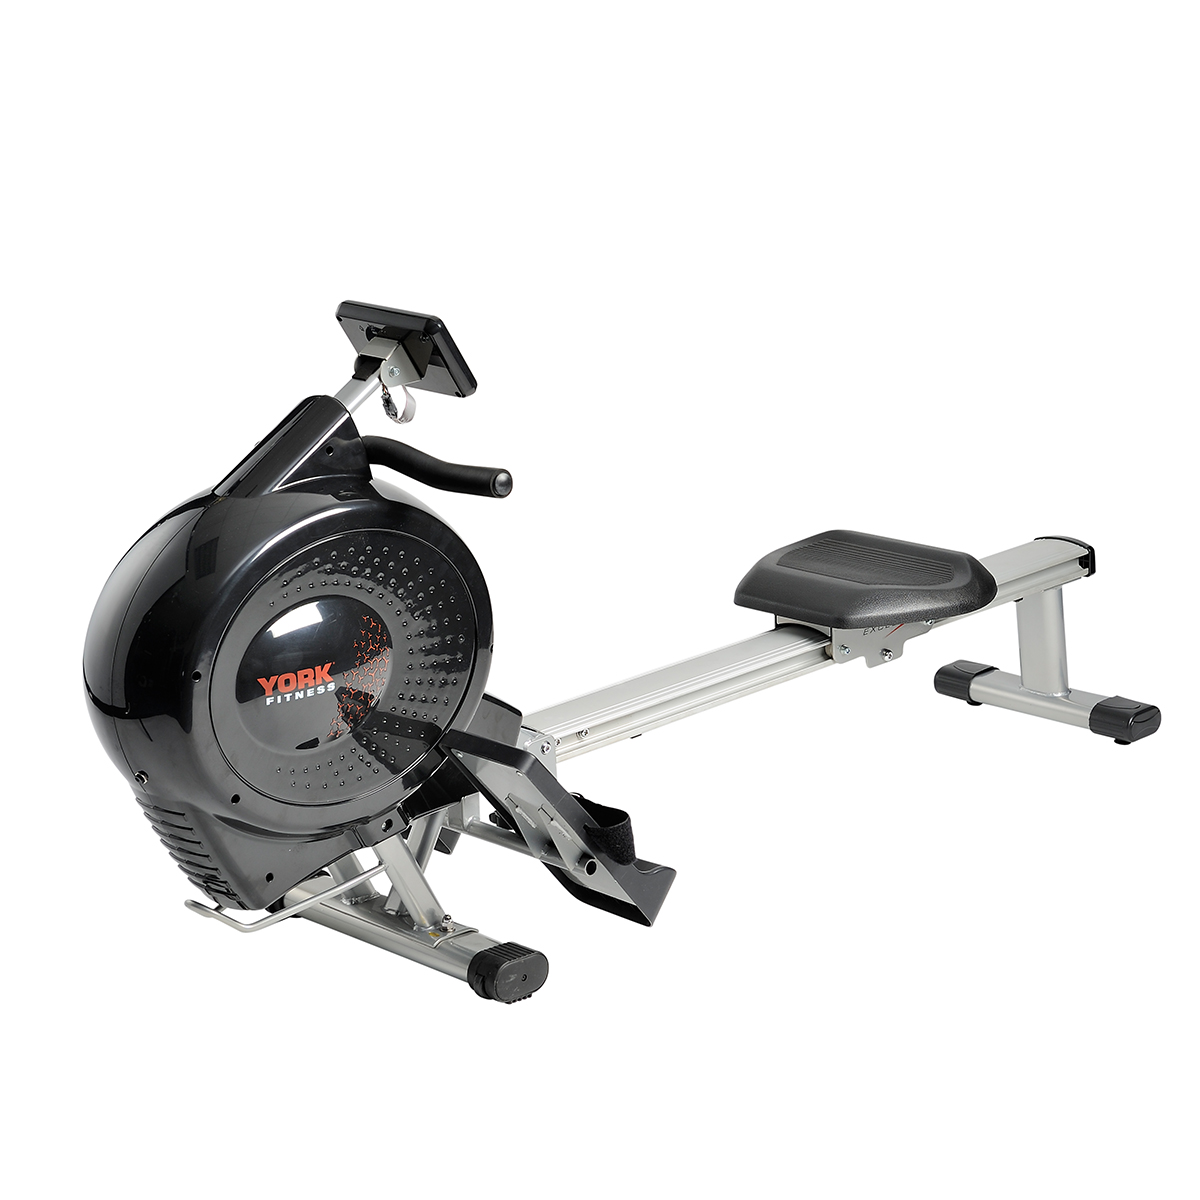 york quest rowing machine review